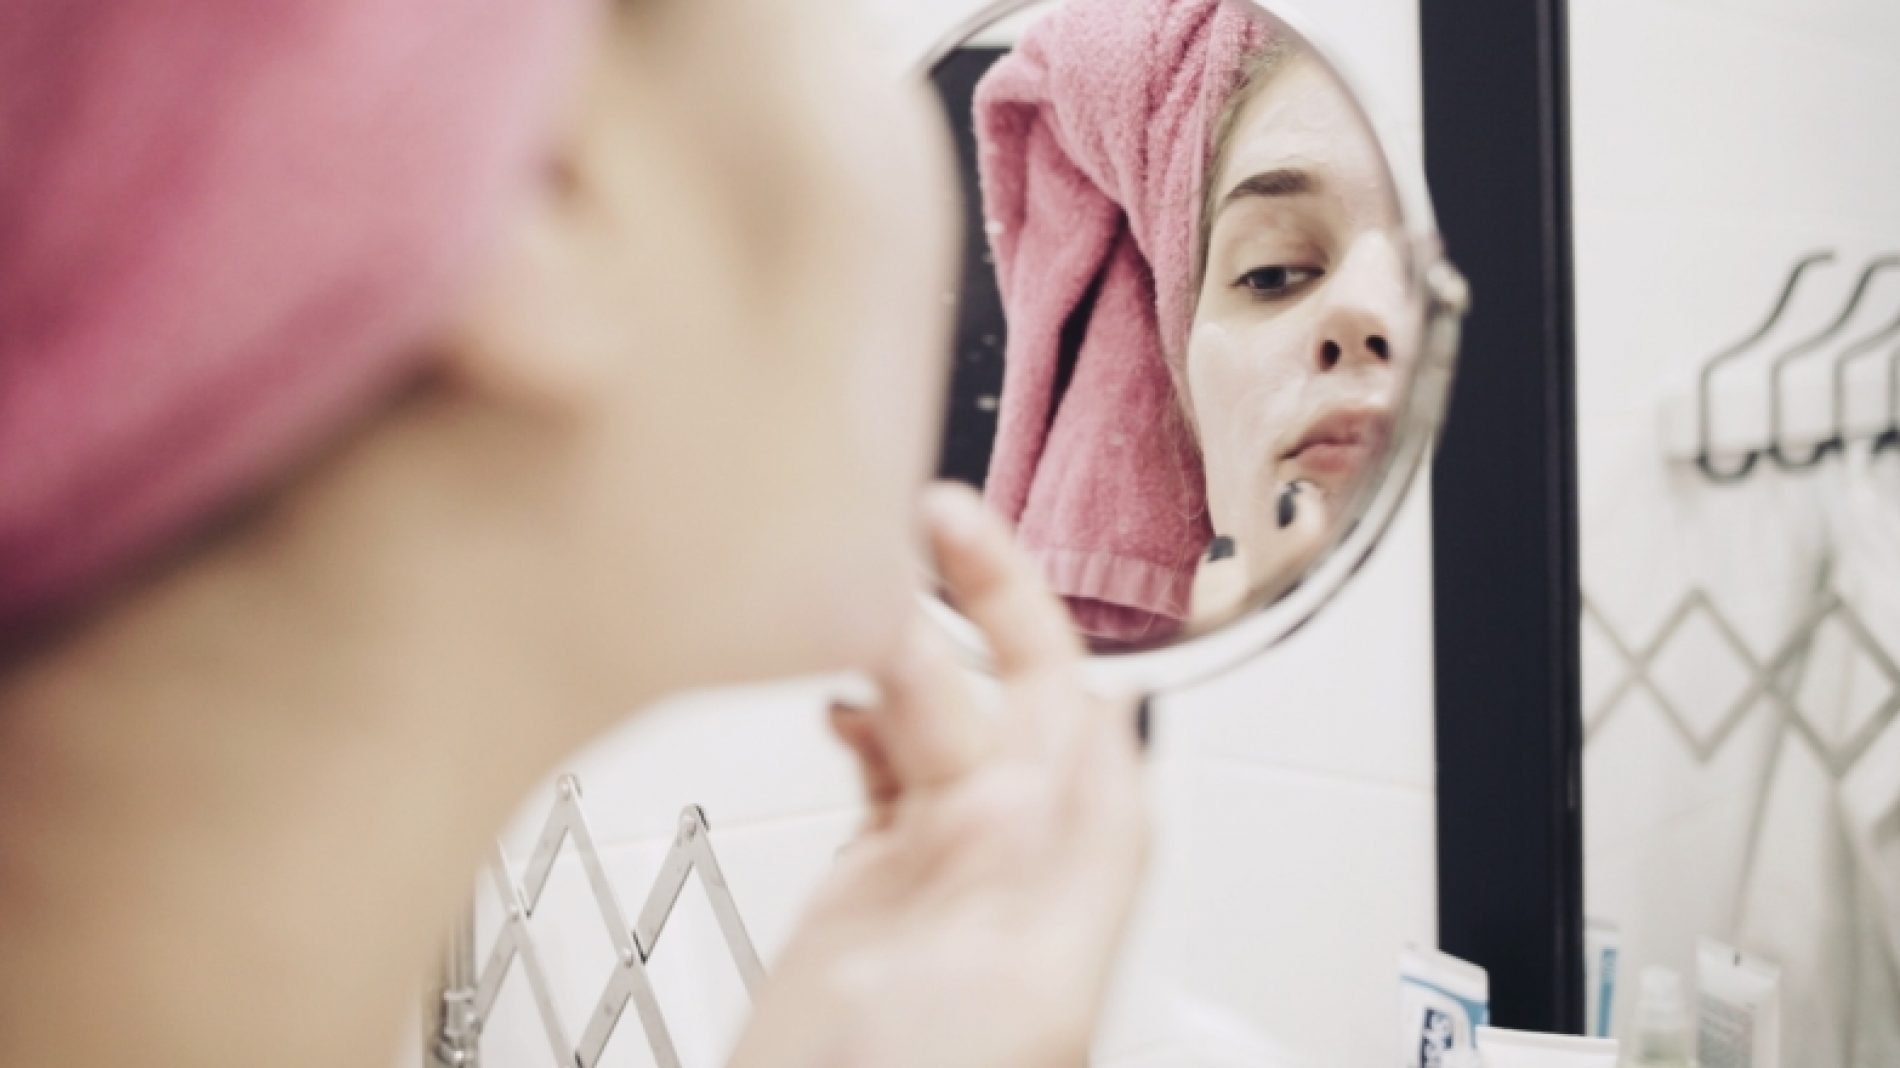 Young-person-cleaning-their-face-in-the-mirror-jfq16q